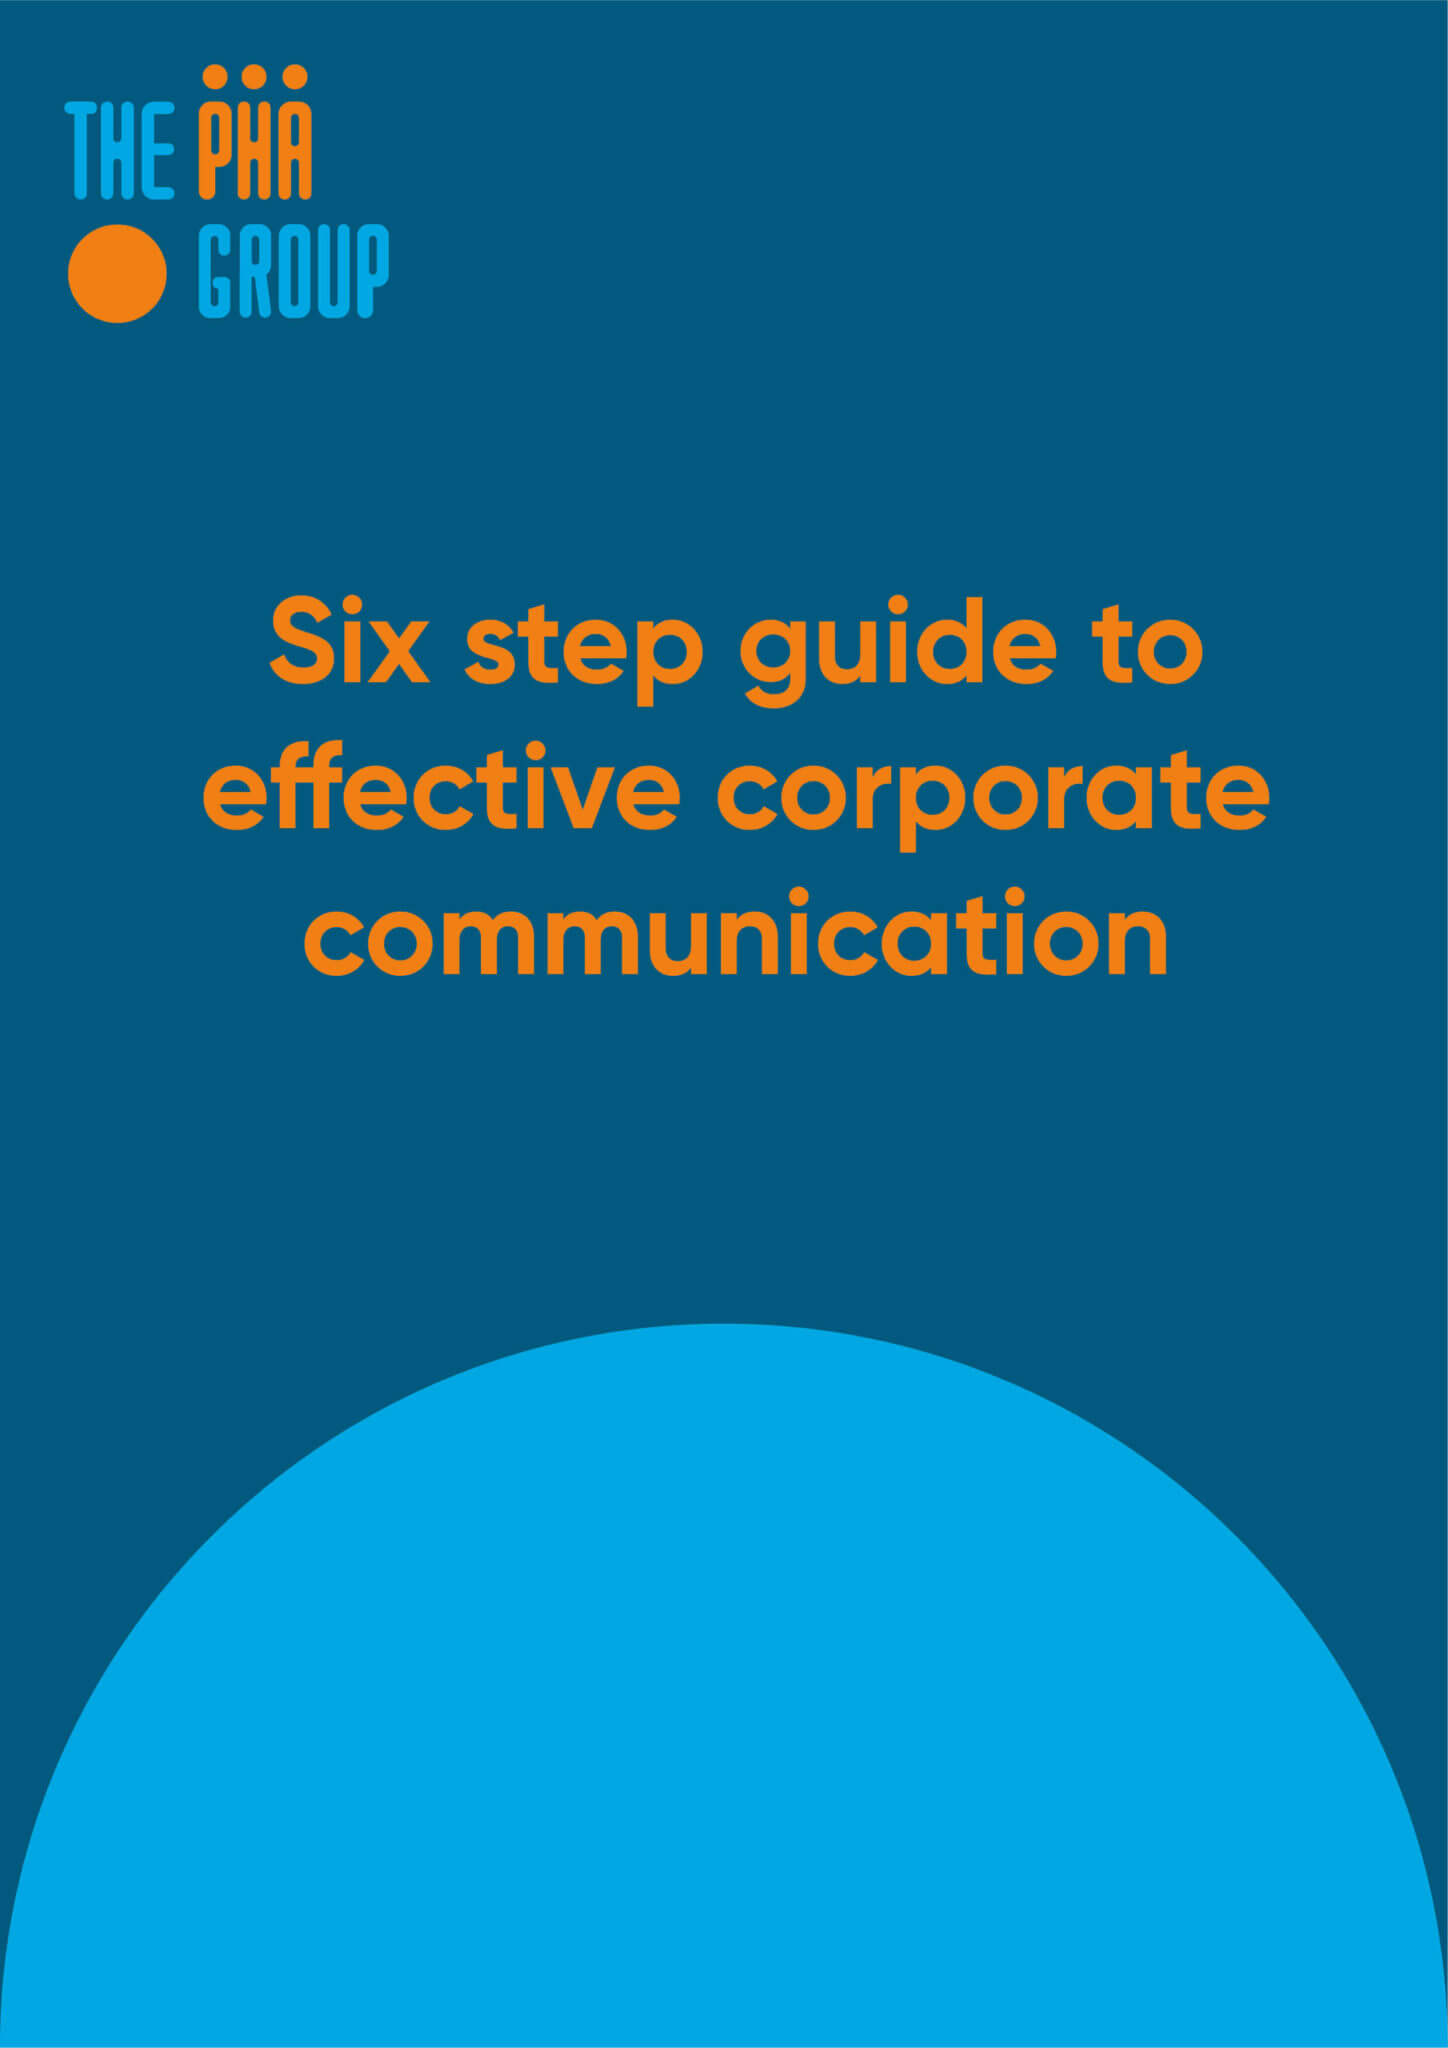 Six step guide to effective corporate communication